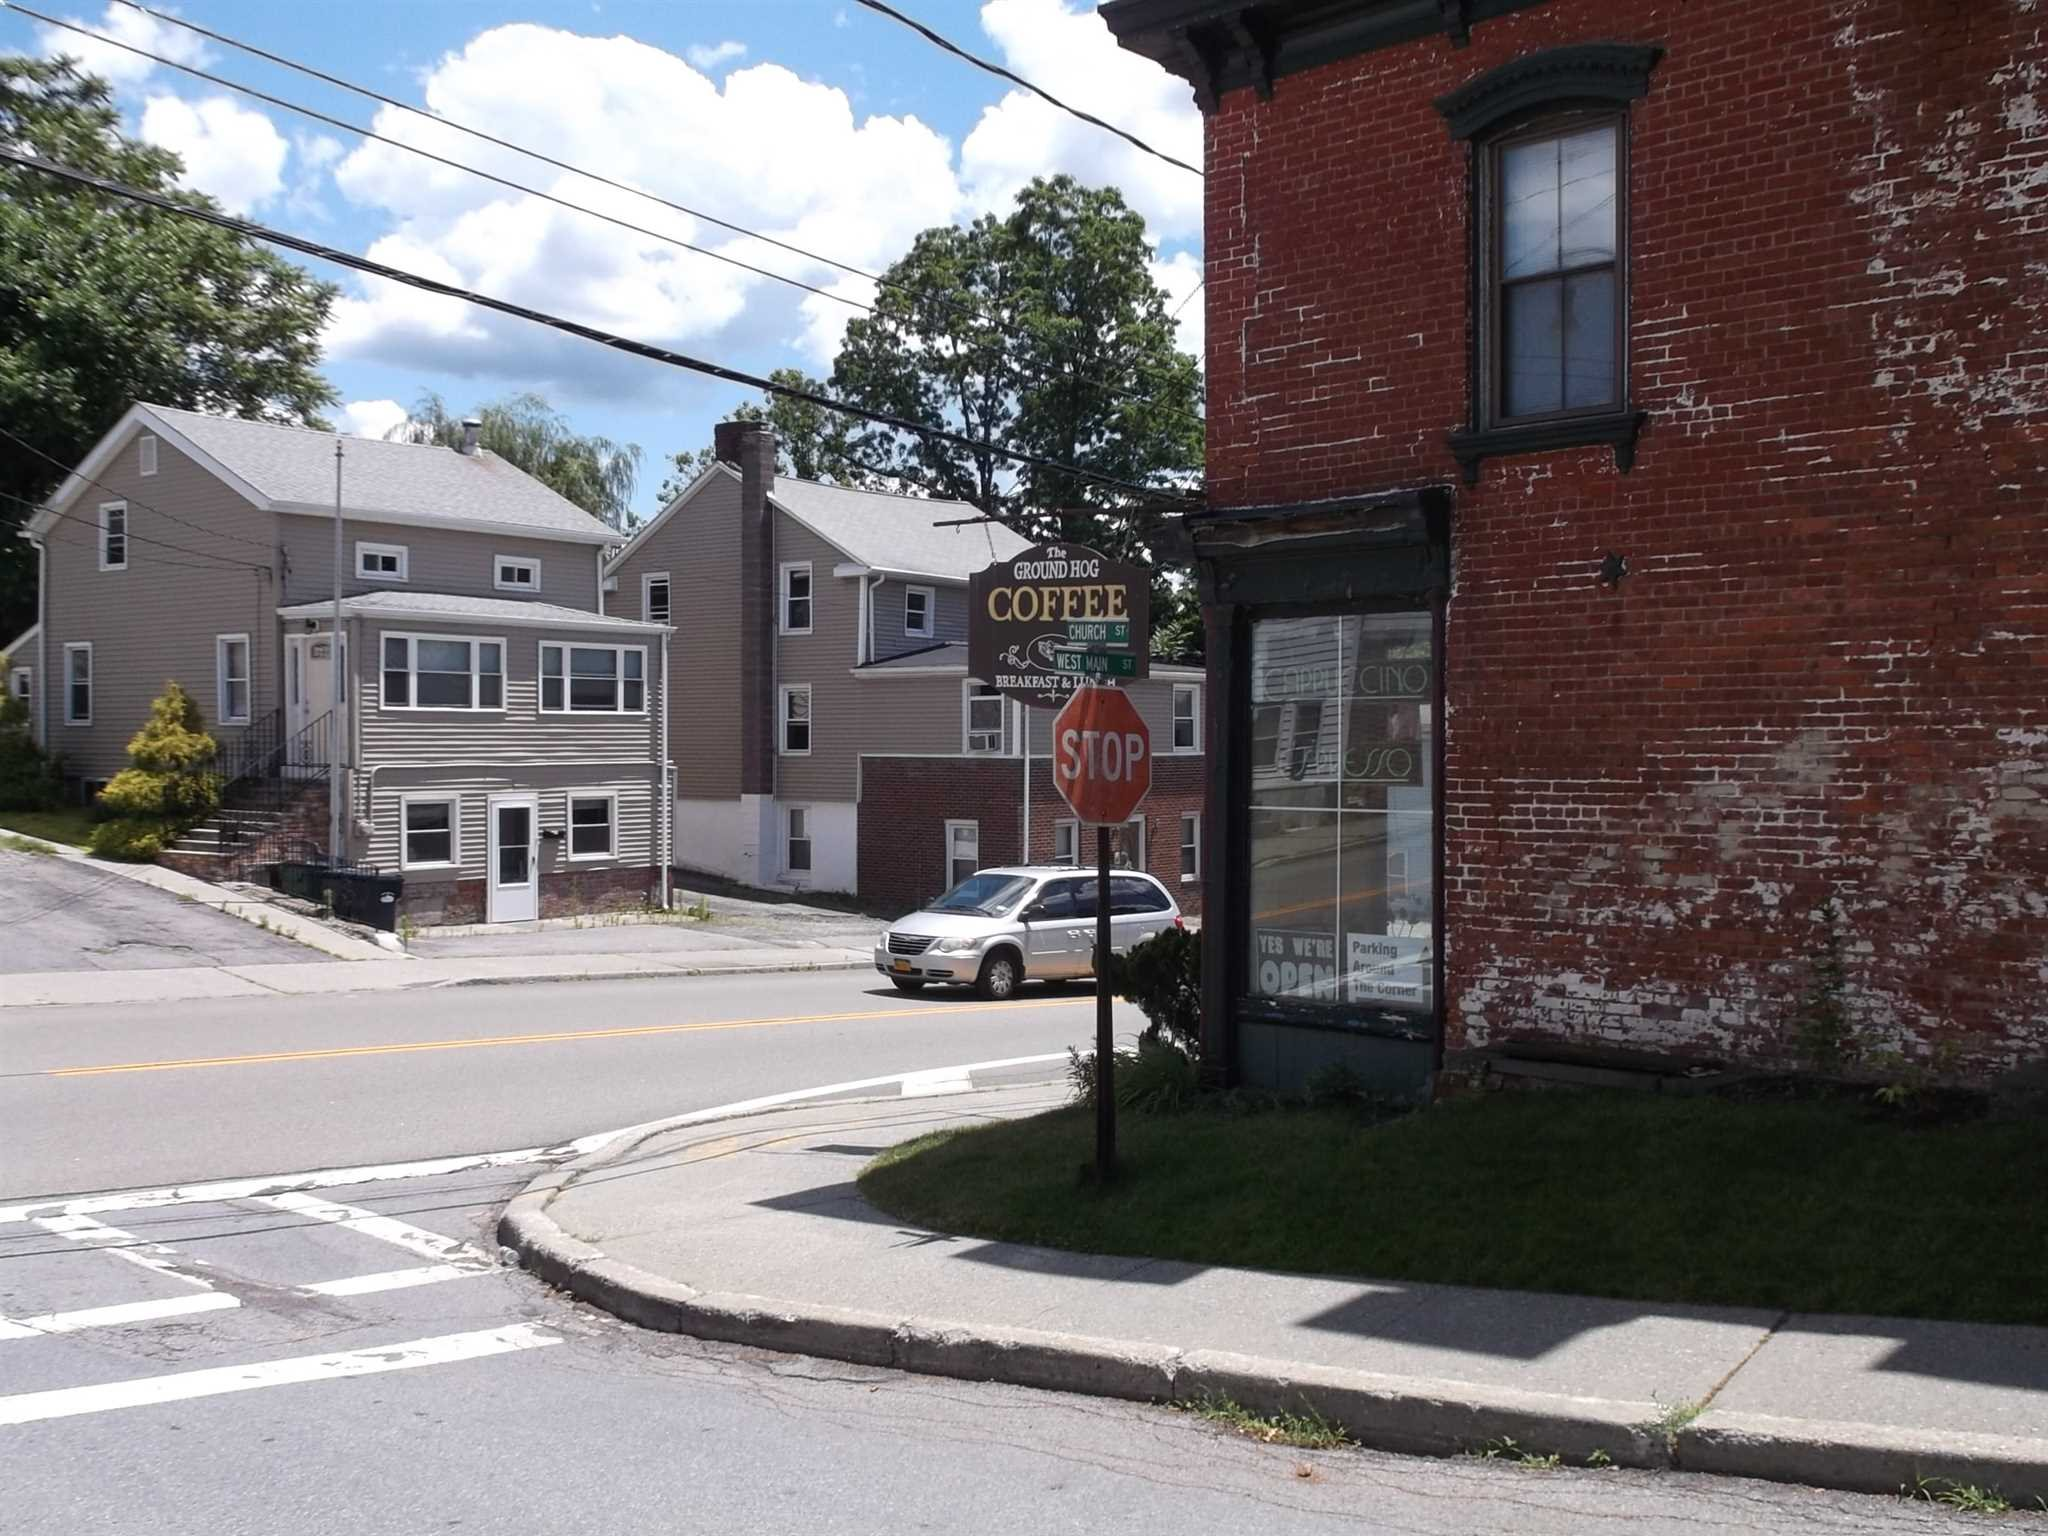 Additional photo for property listing at 2703 MAIN Street 2703 MAIN Street Wappingers Falls, New York 12590 United States